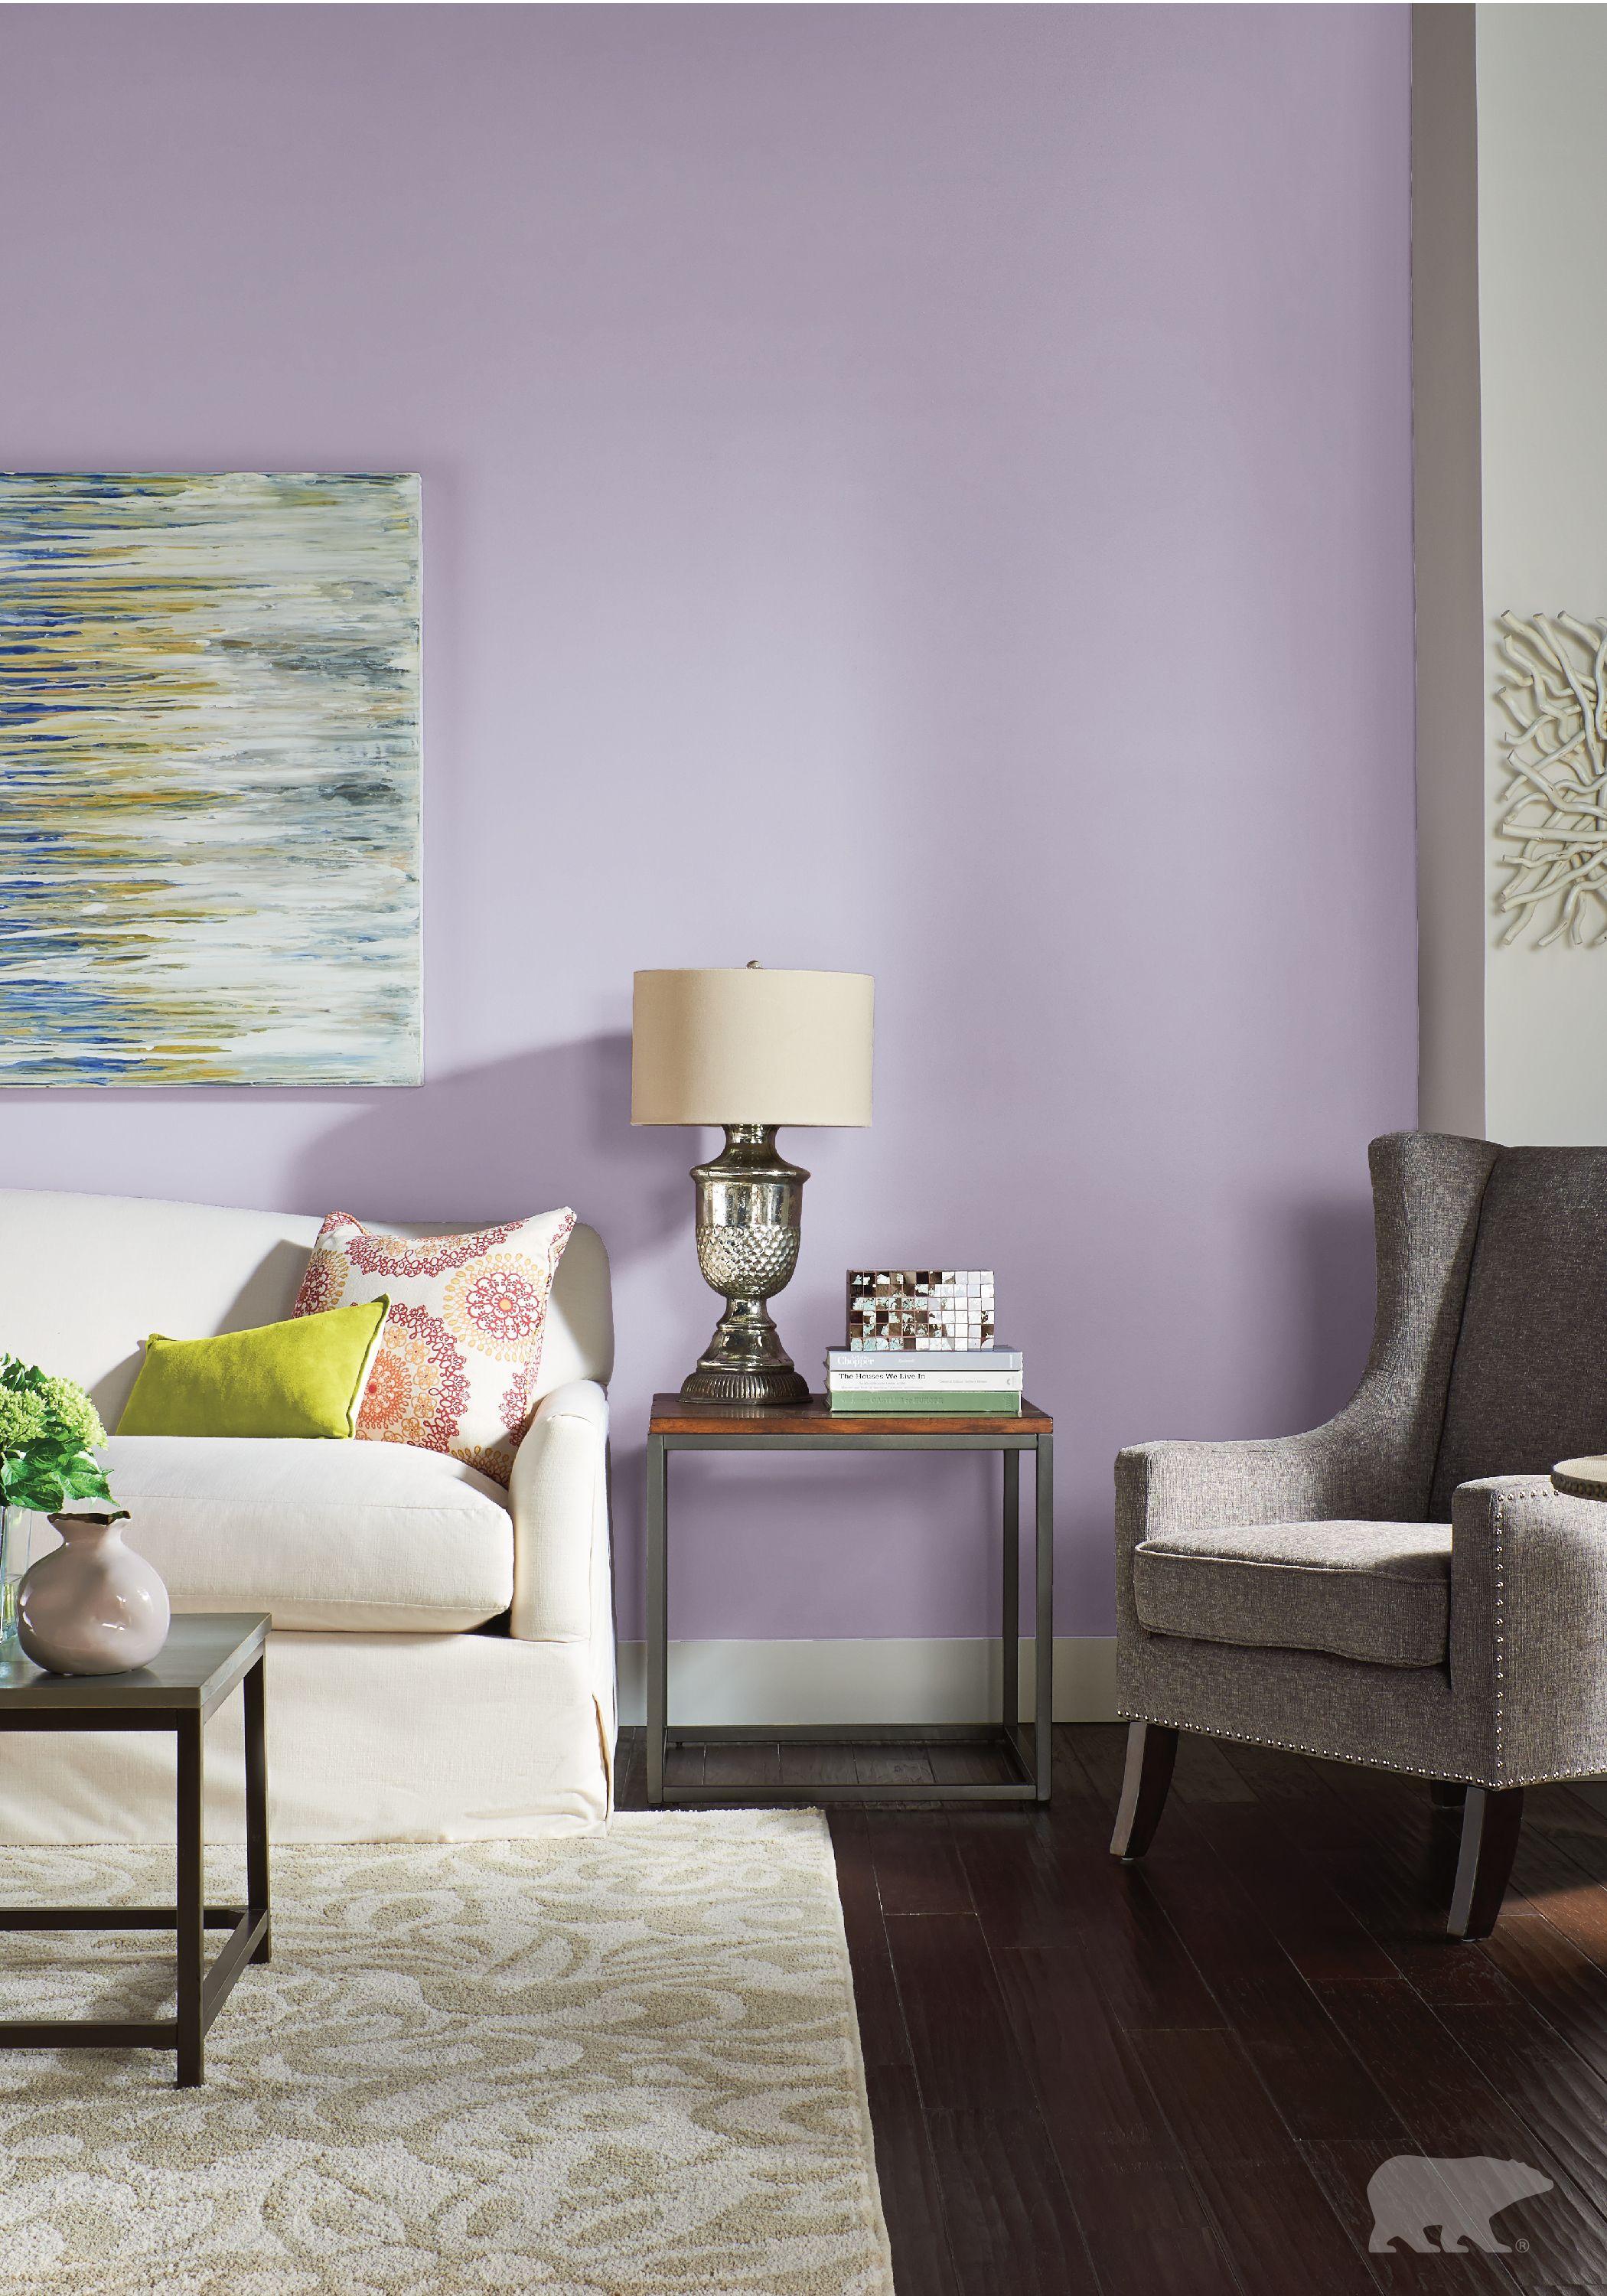 Spring Fever Is In The Air And Your Living Room Design